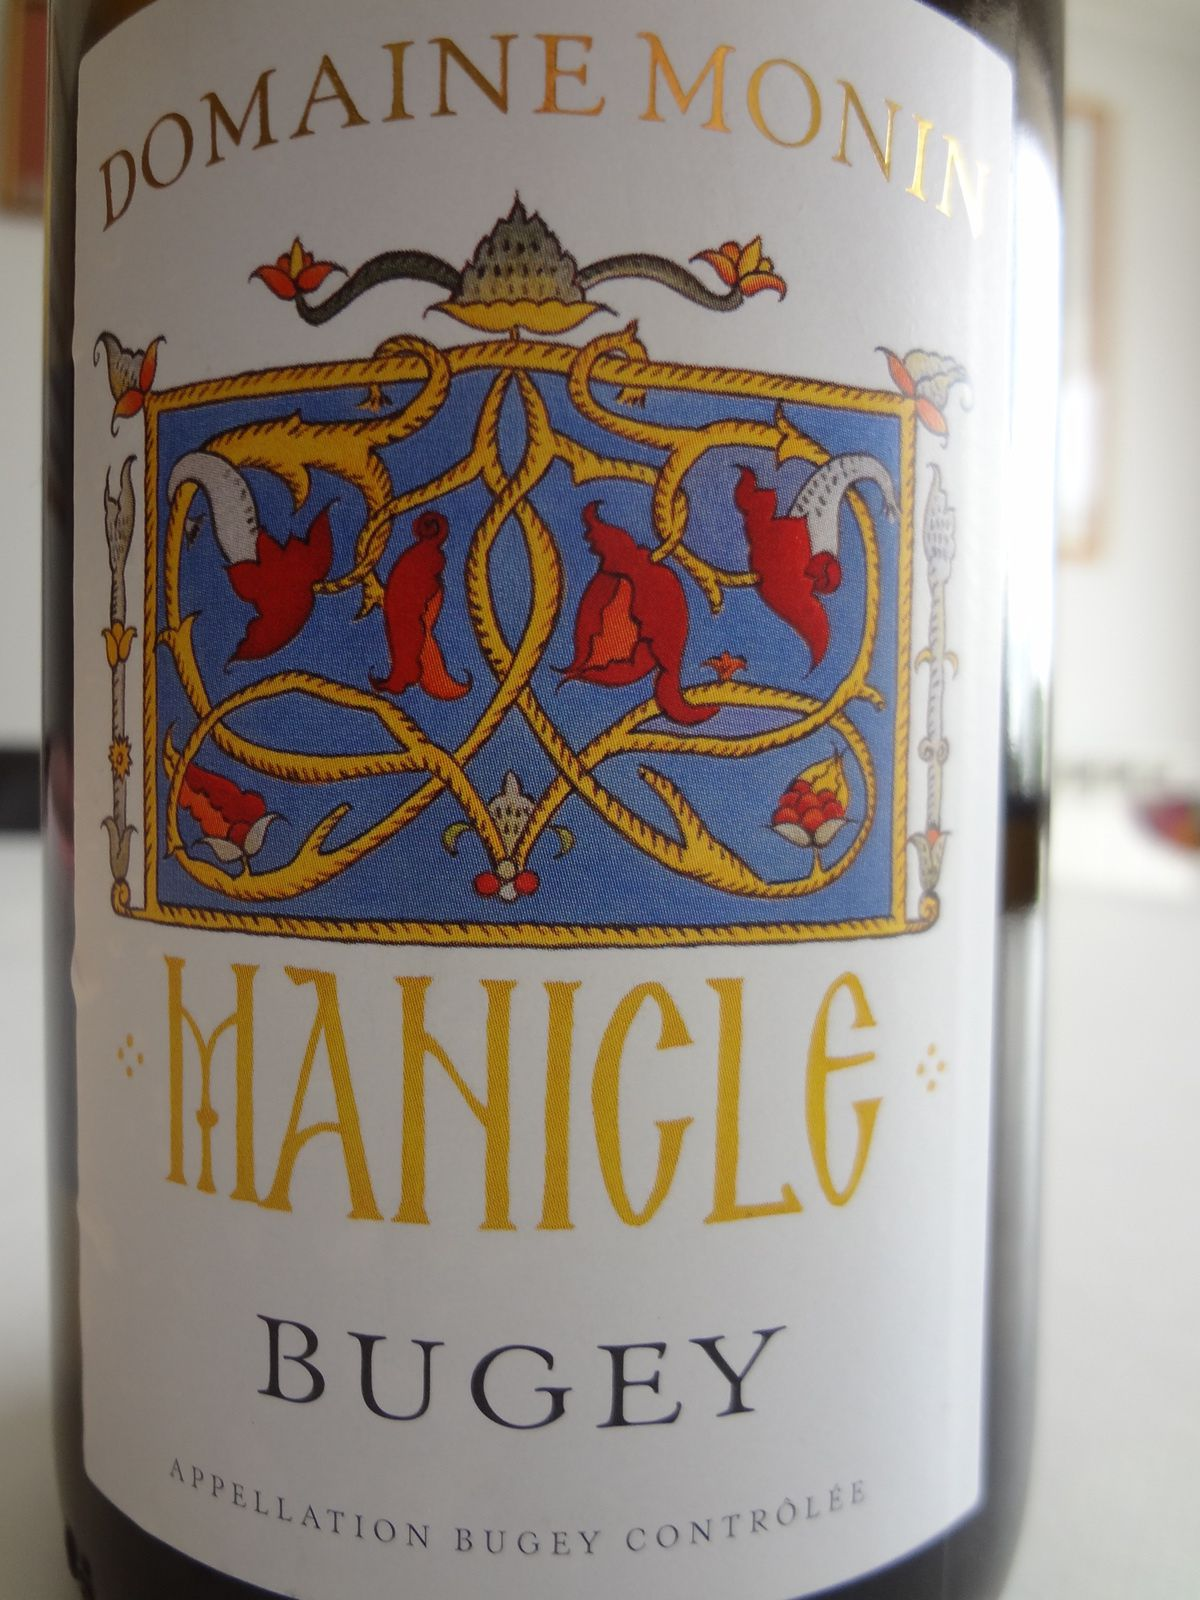 VINO PASSION - Bugey Manicle.